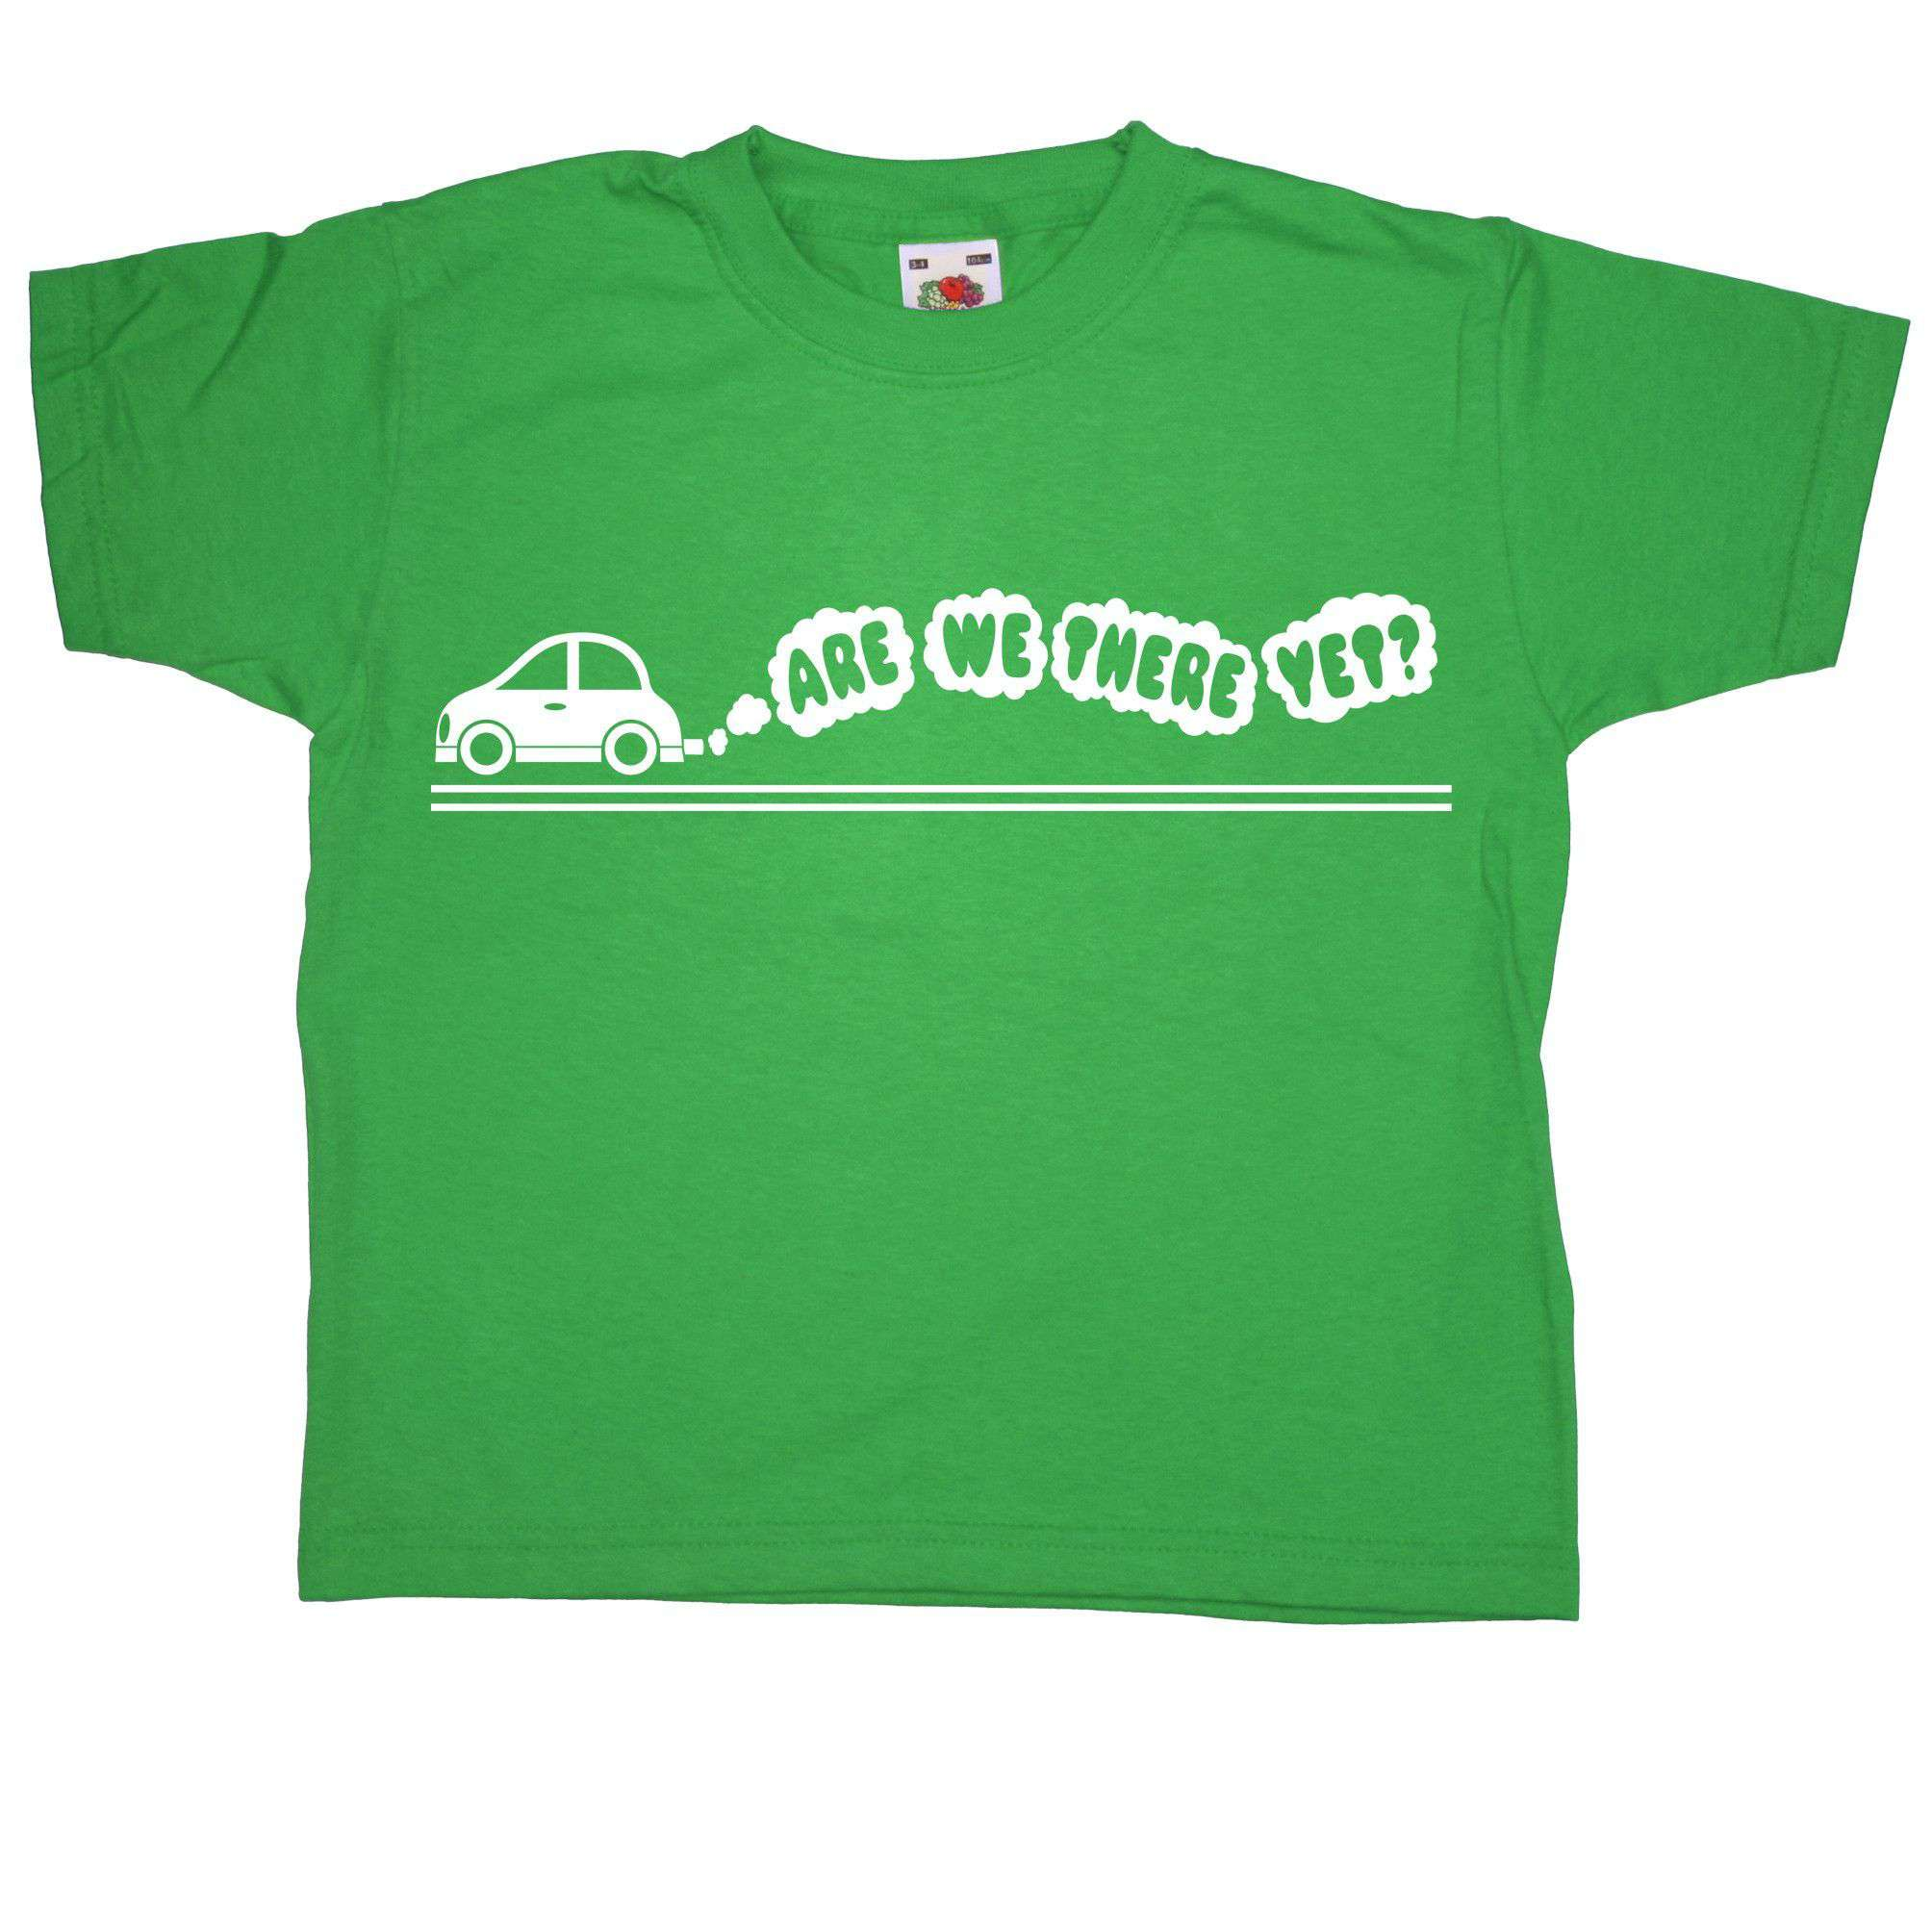 Kids T Shirt - Are We There Yet